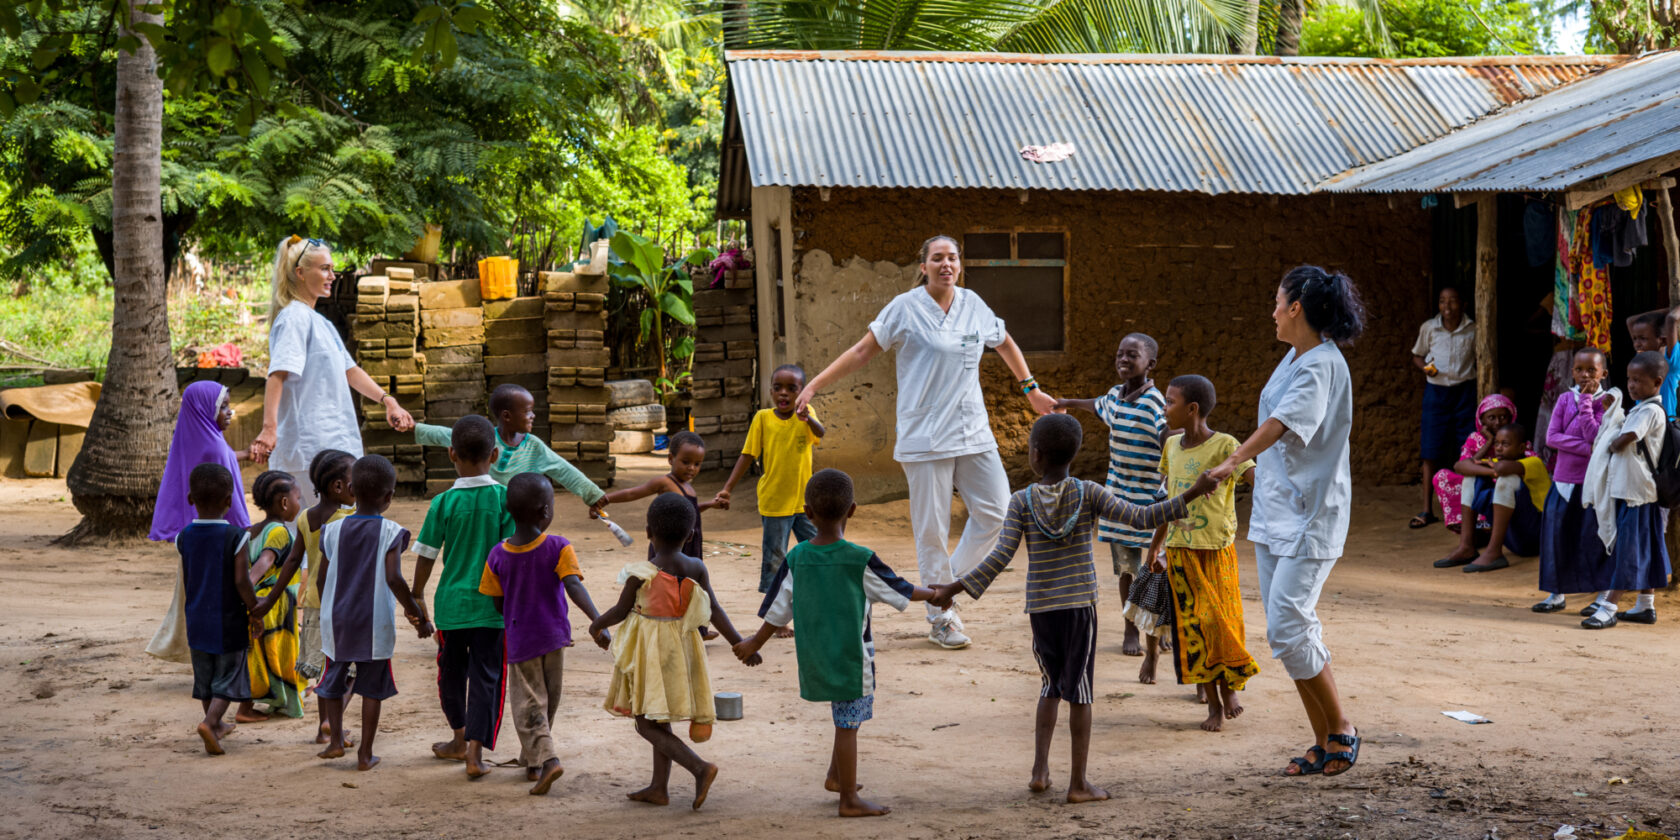 Students and children forming a circle by holding hands, spinning around and singing